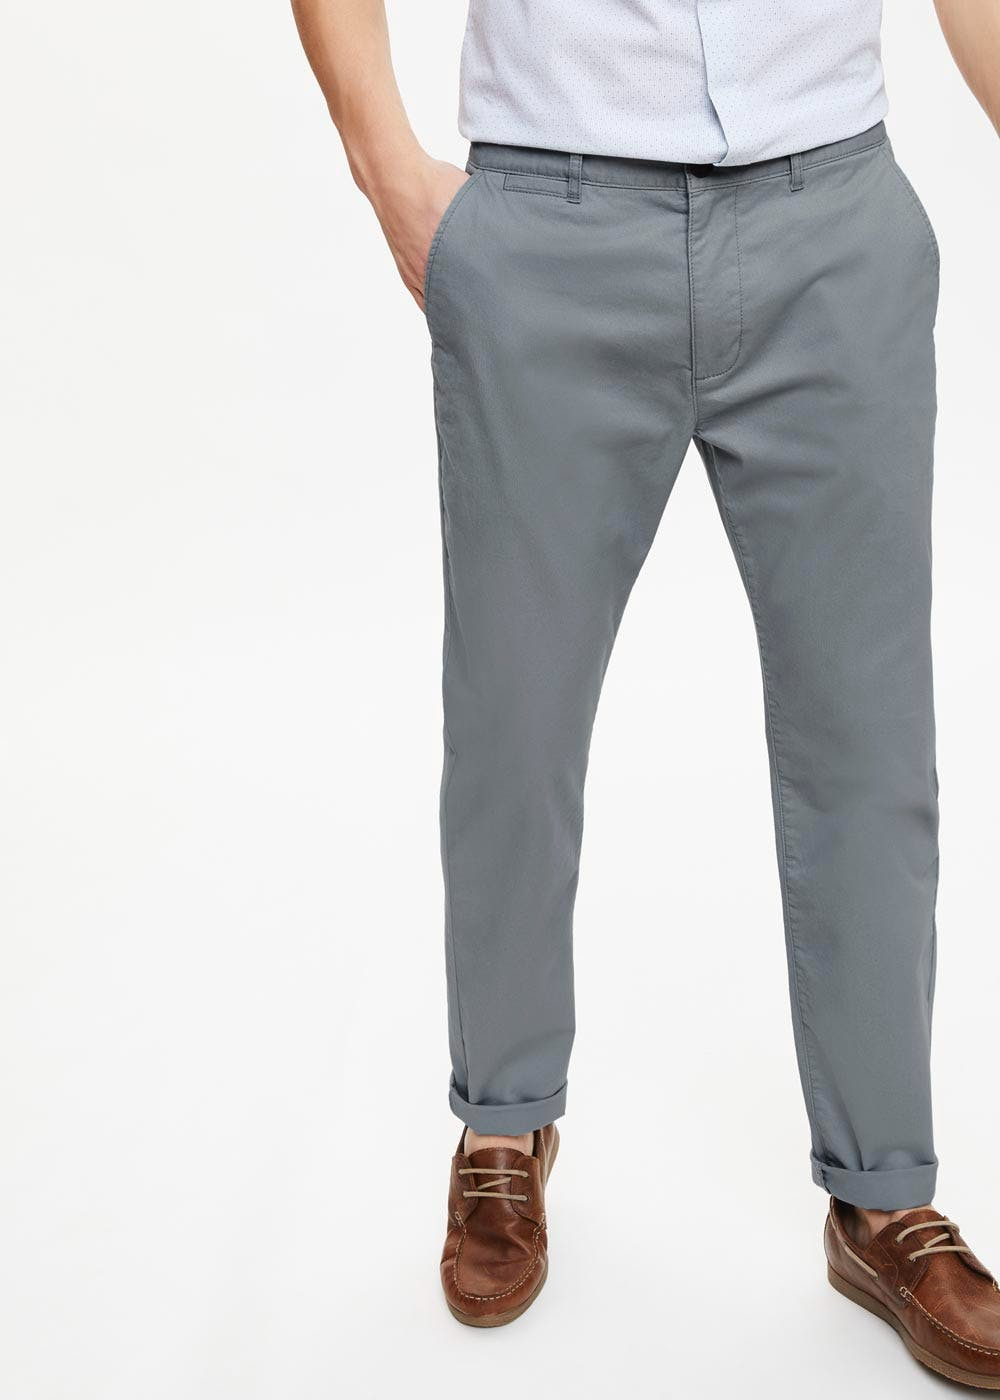 6ea579d8 Straight Fit Stretch Chinos – Duck Egg Blue – Matalan